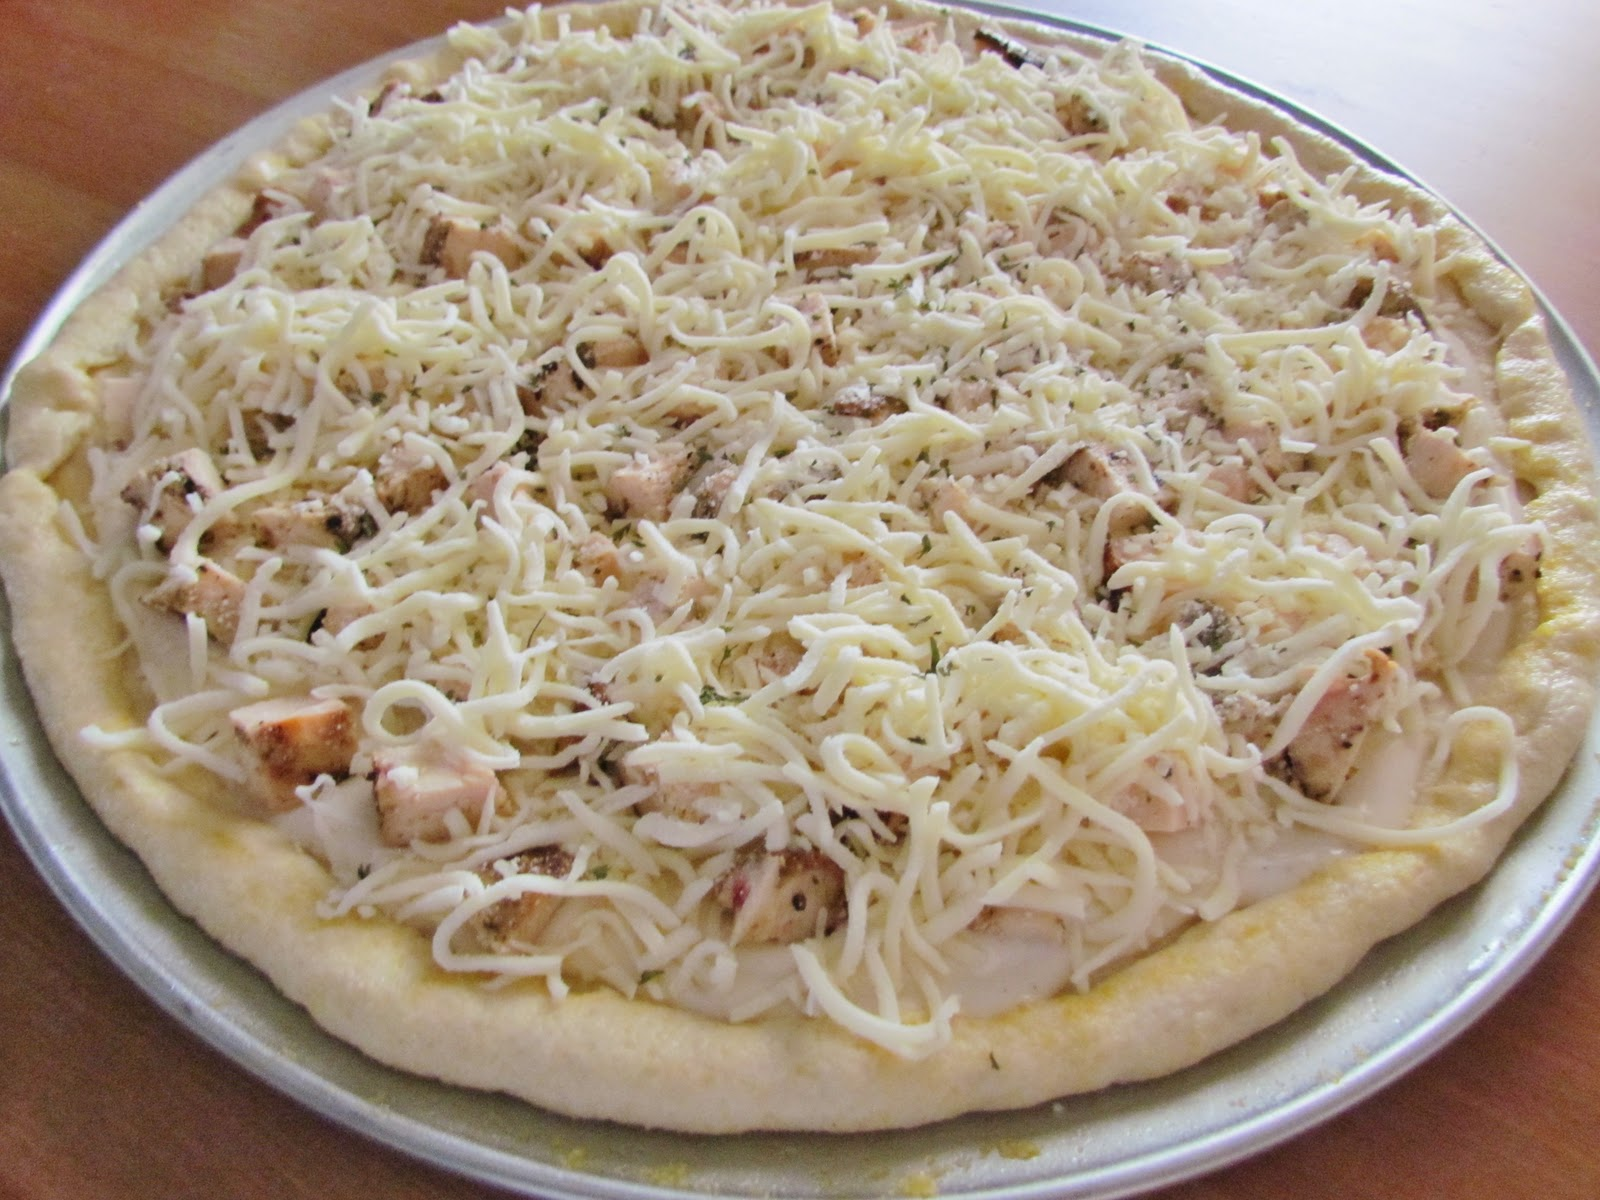 ... pizza recipe I'm using here is for the Grilled Chicken Alfredo Pizza